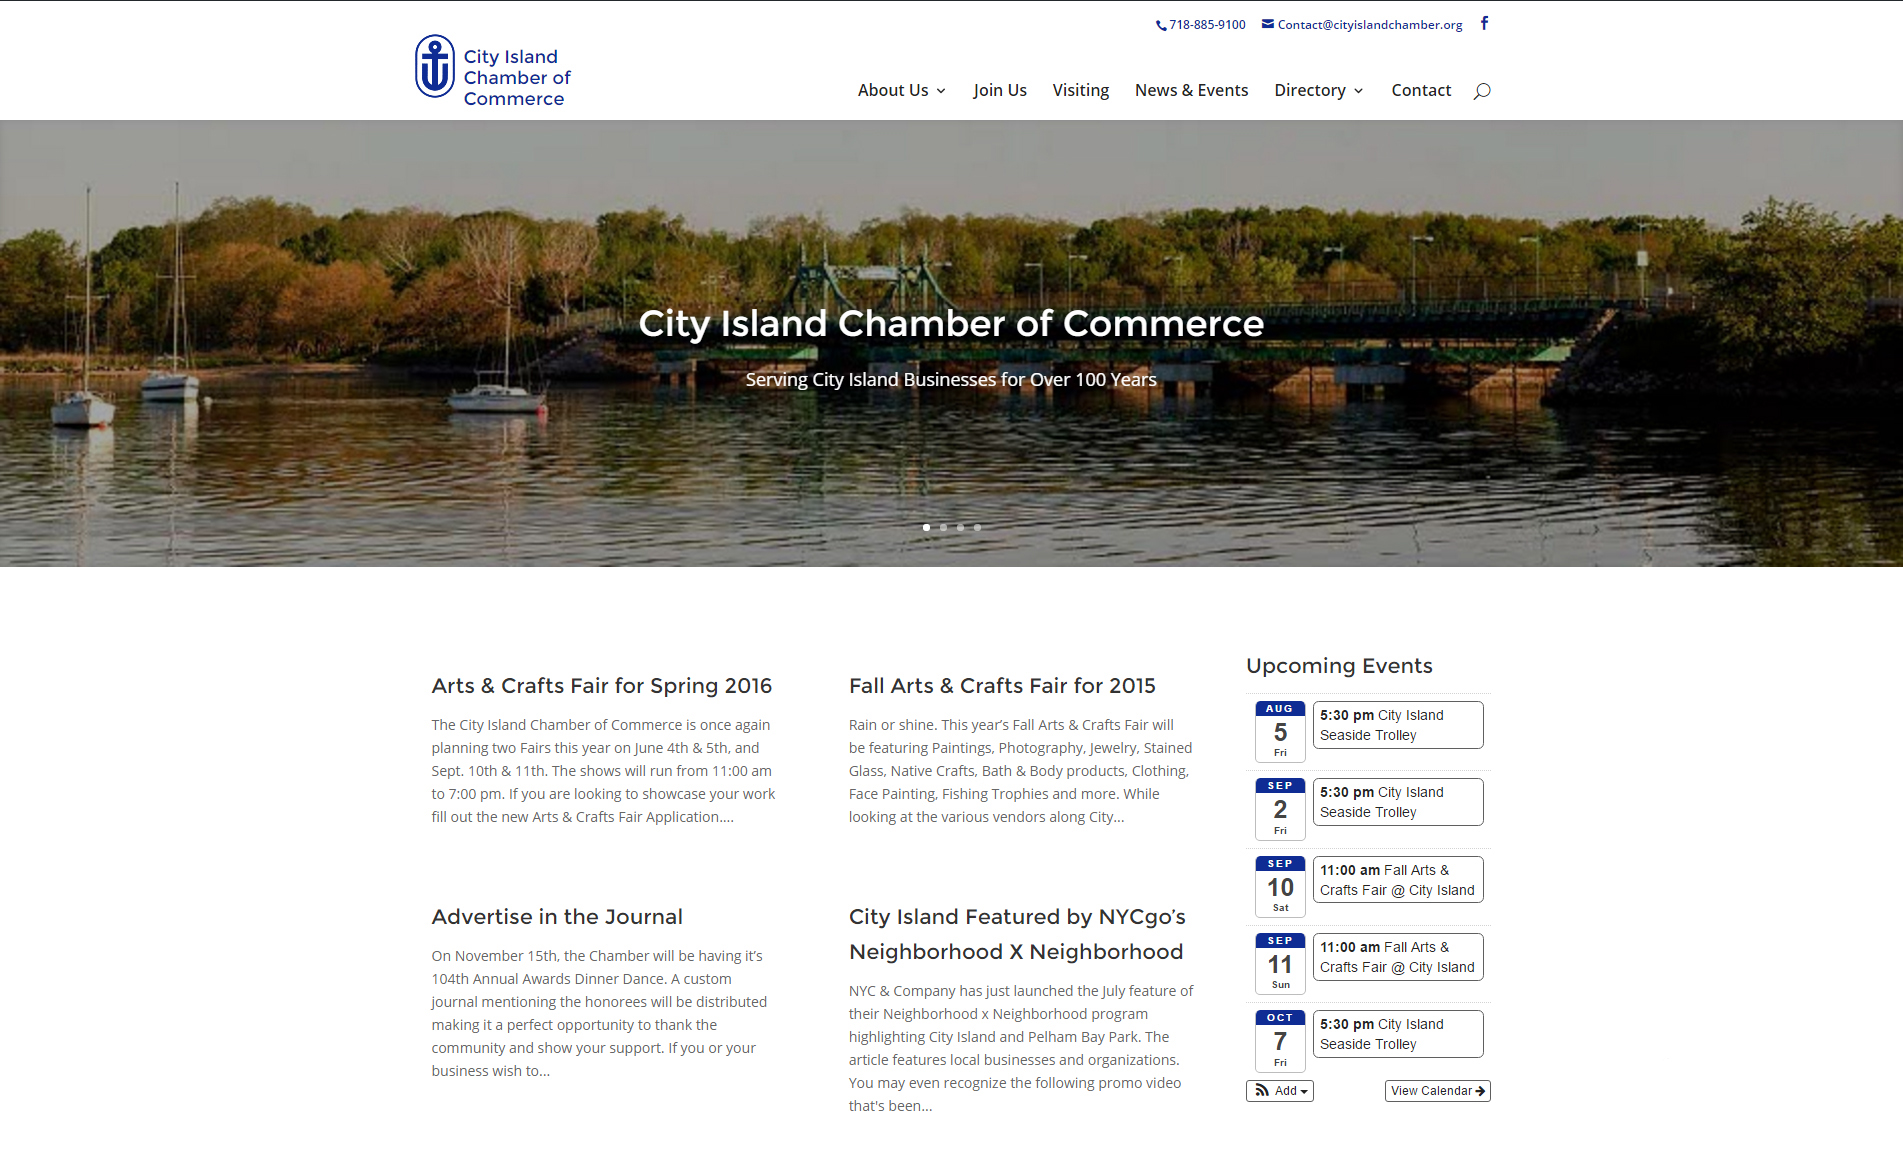 City Island Chamber of Commerce Web Design